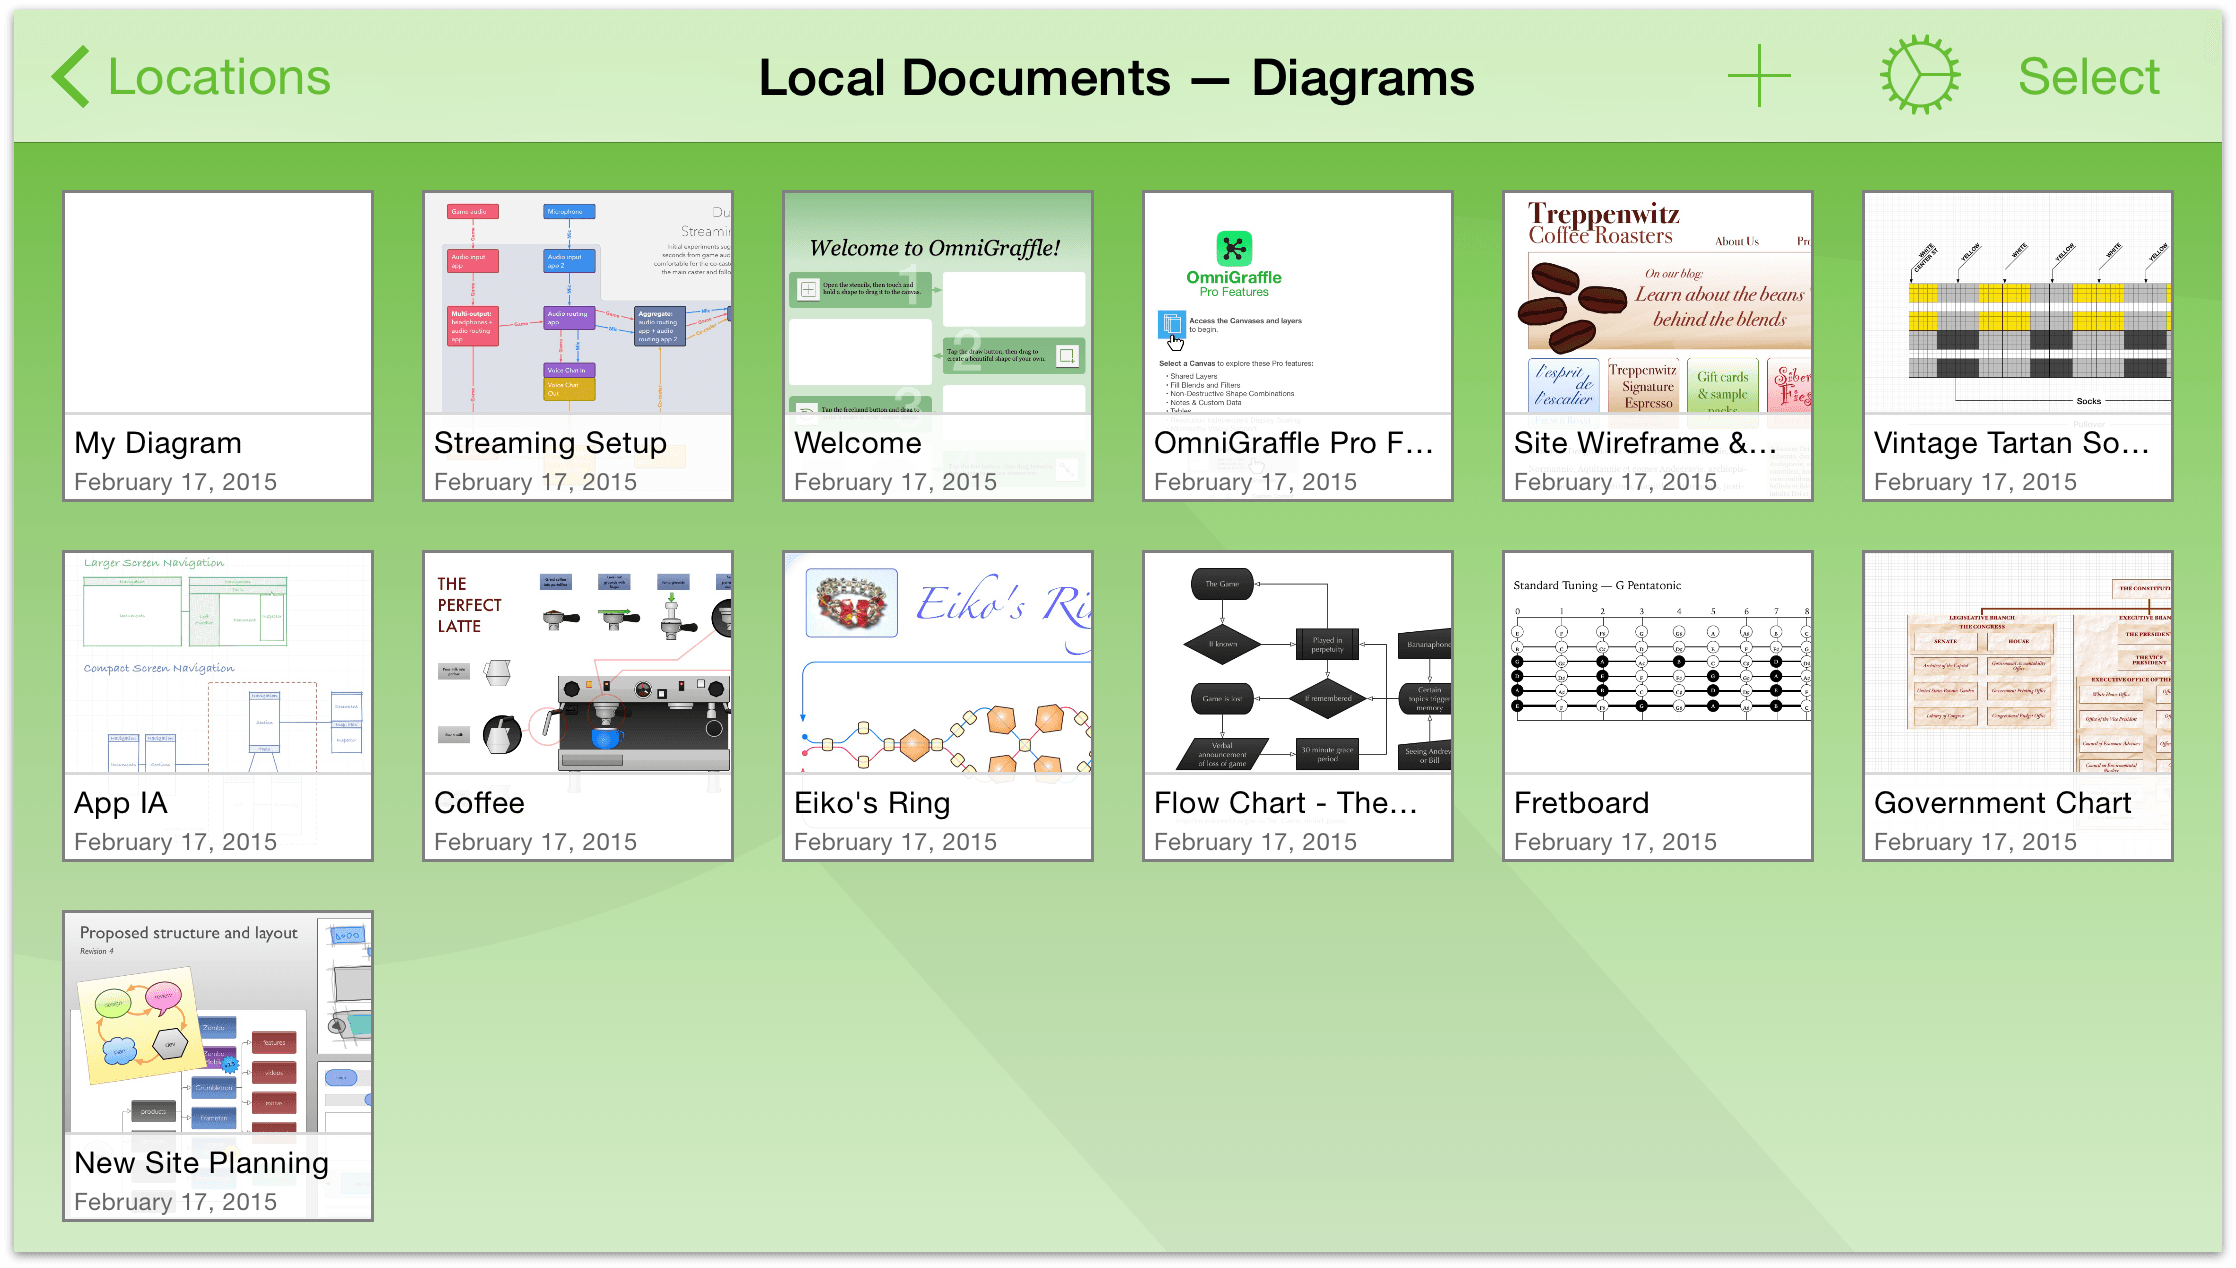 OmniGraffle 2 2 for iOS User Manual - Managing Files with